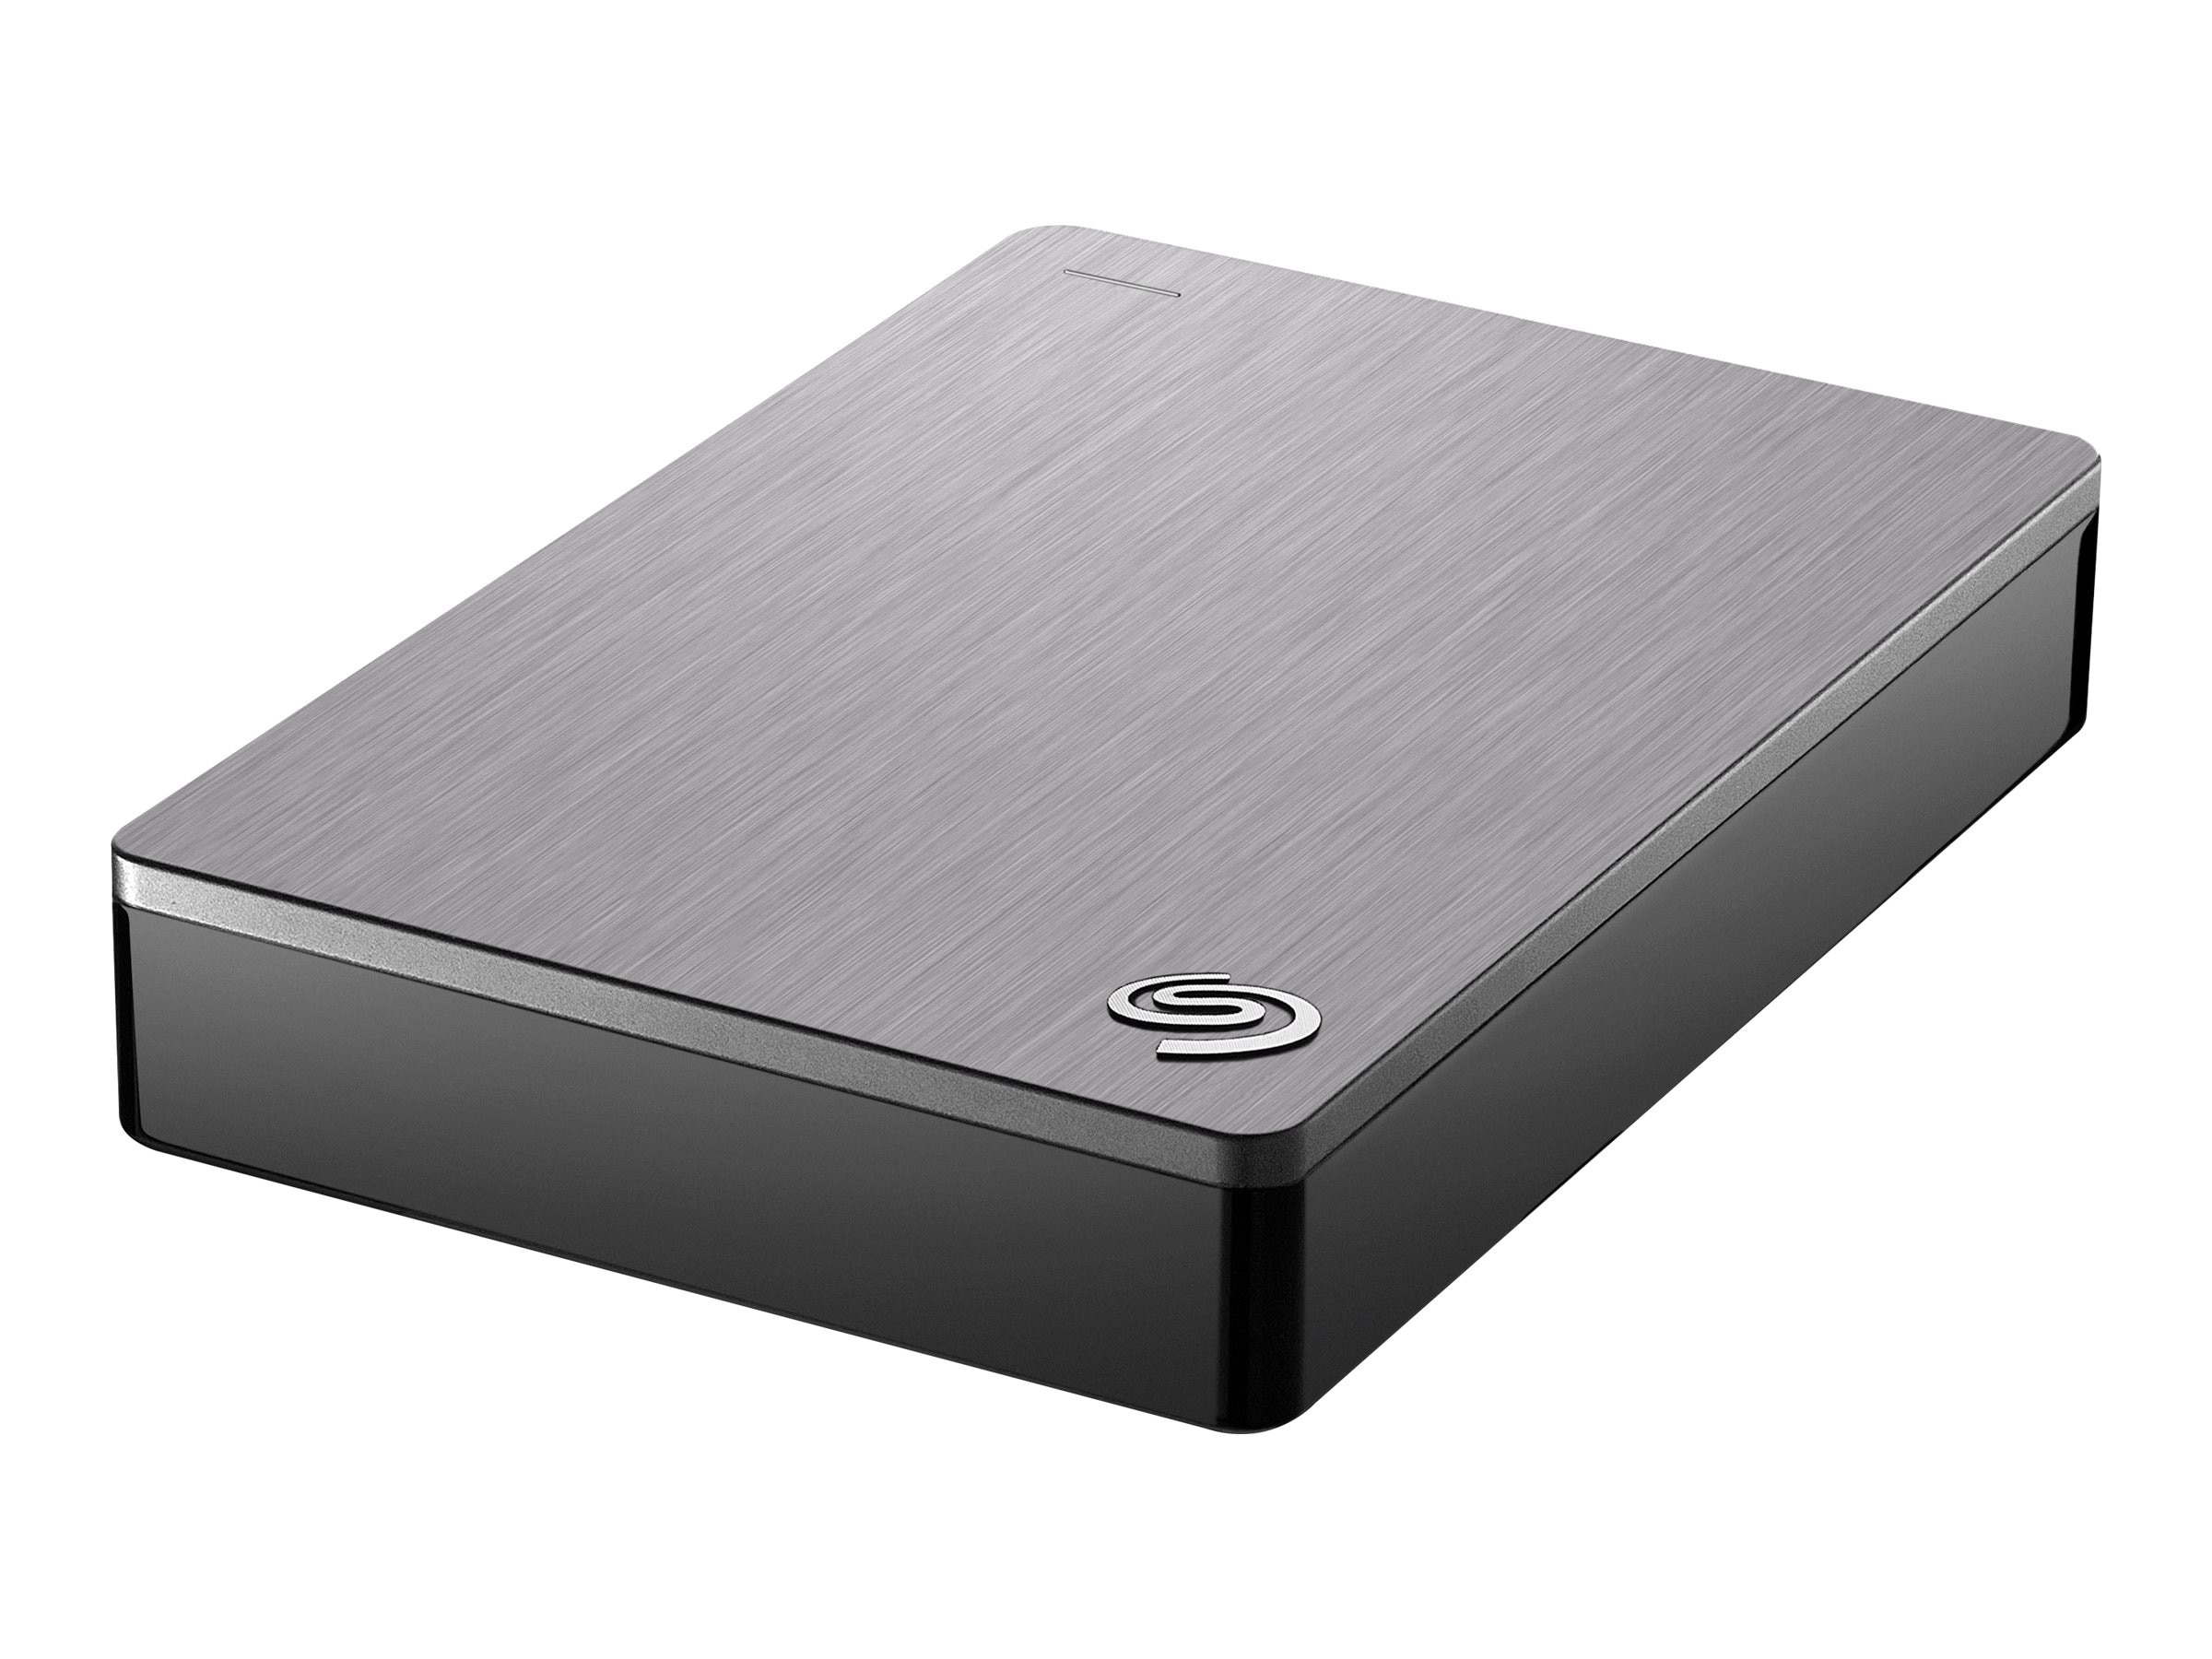 Seagate Technology STDS4000400 Image 3